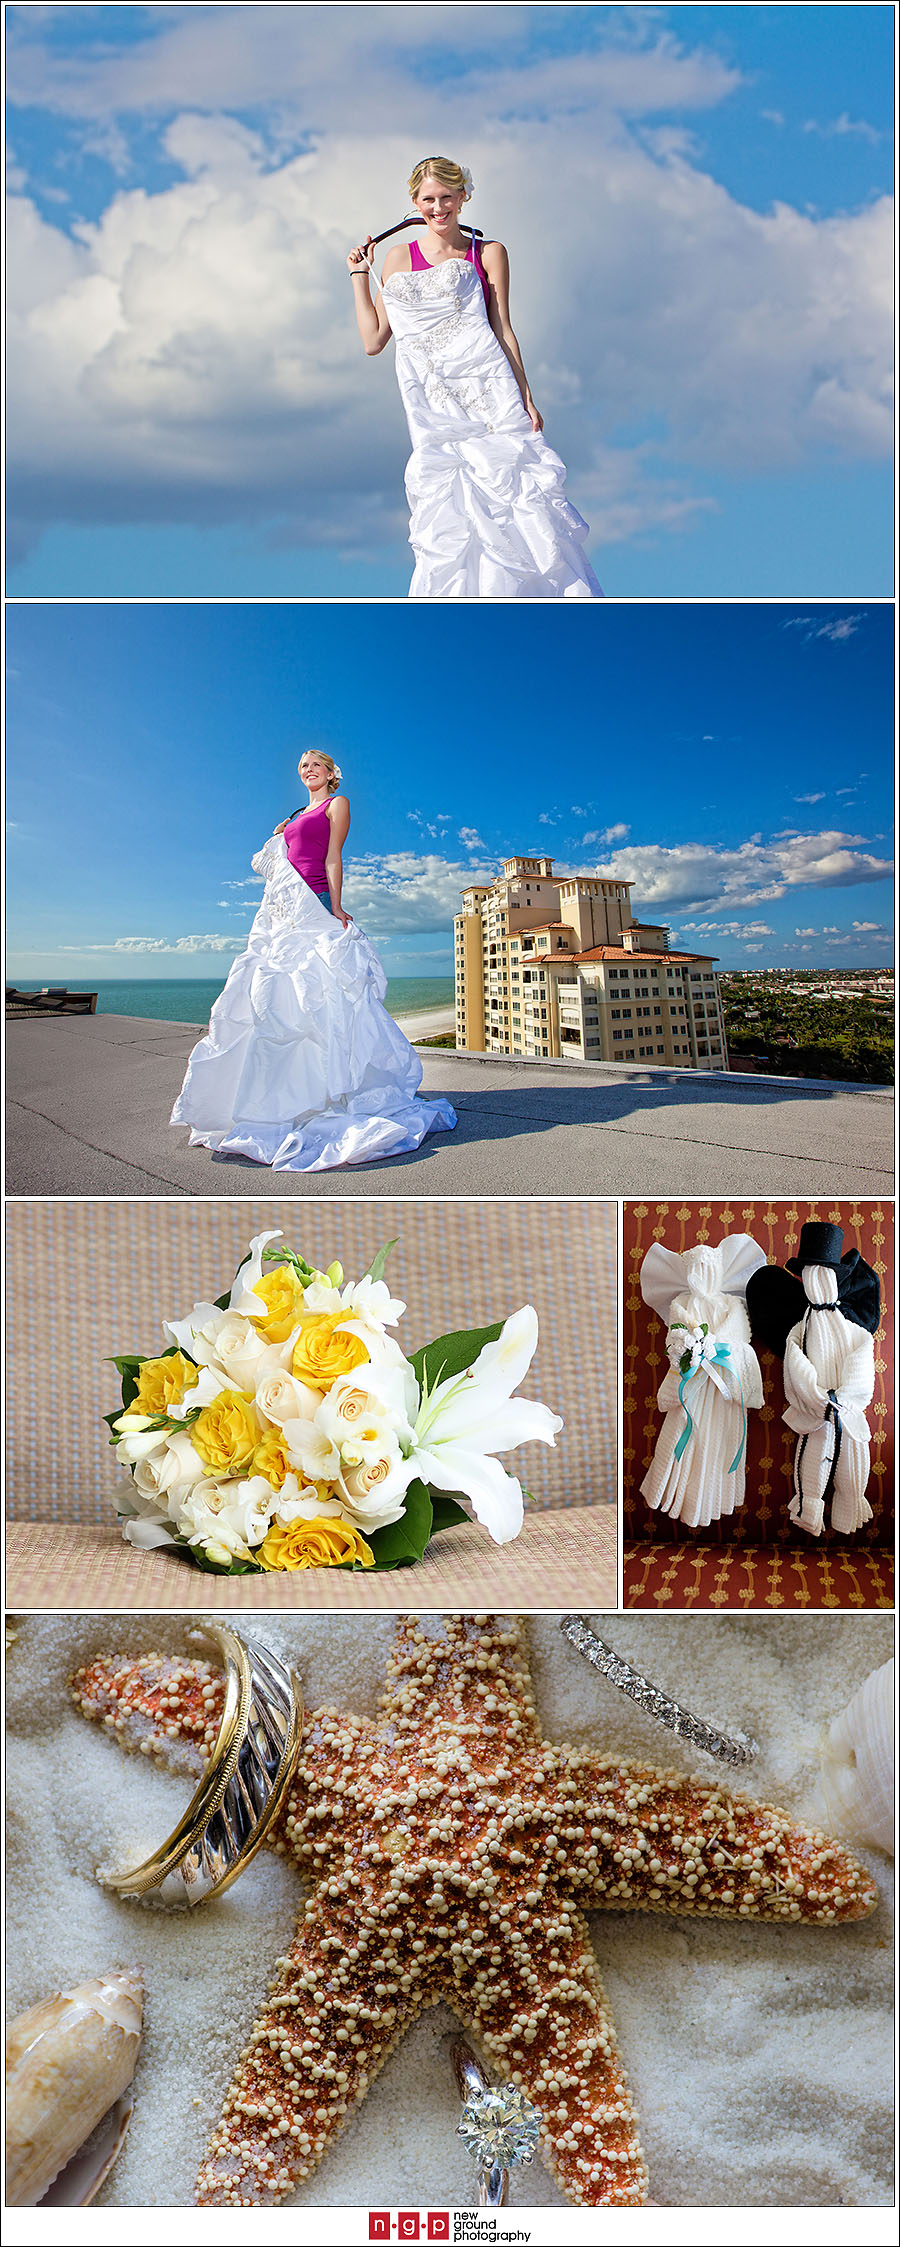 Marco island wedding brittany greg marco island for Key west wedding dresses